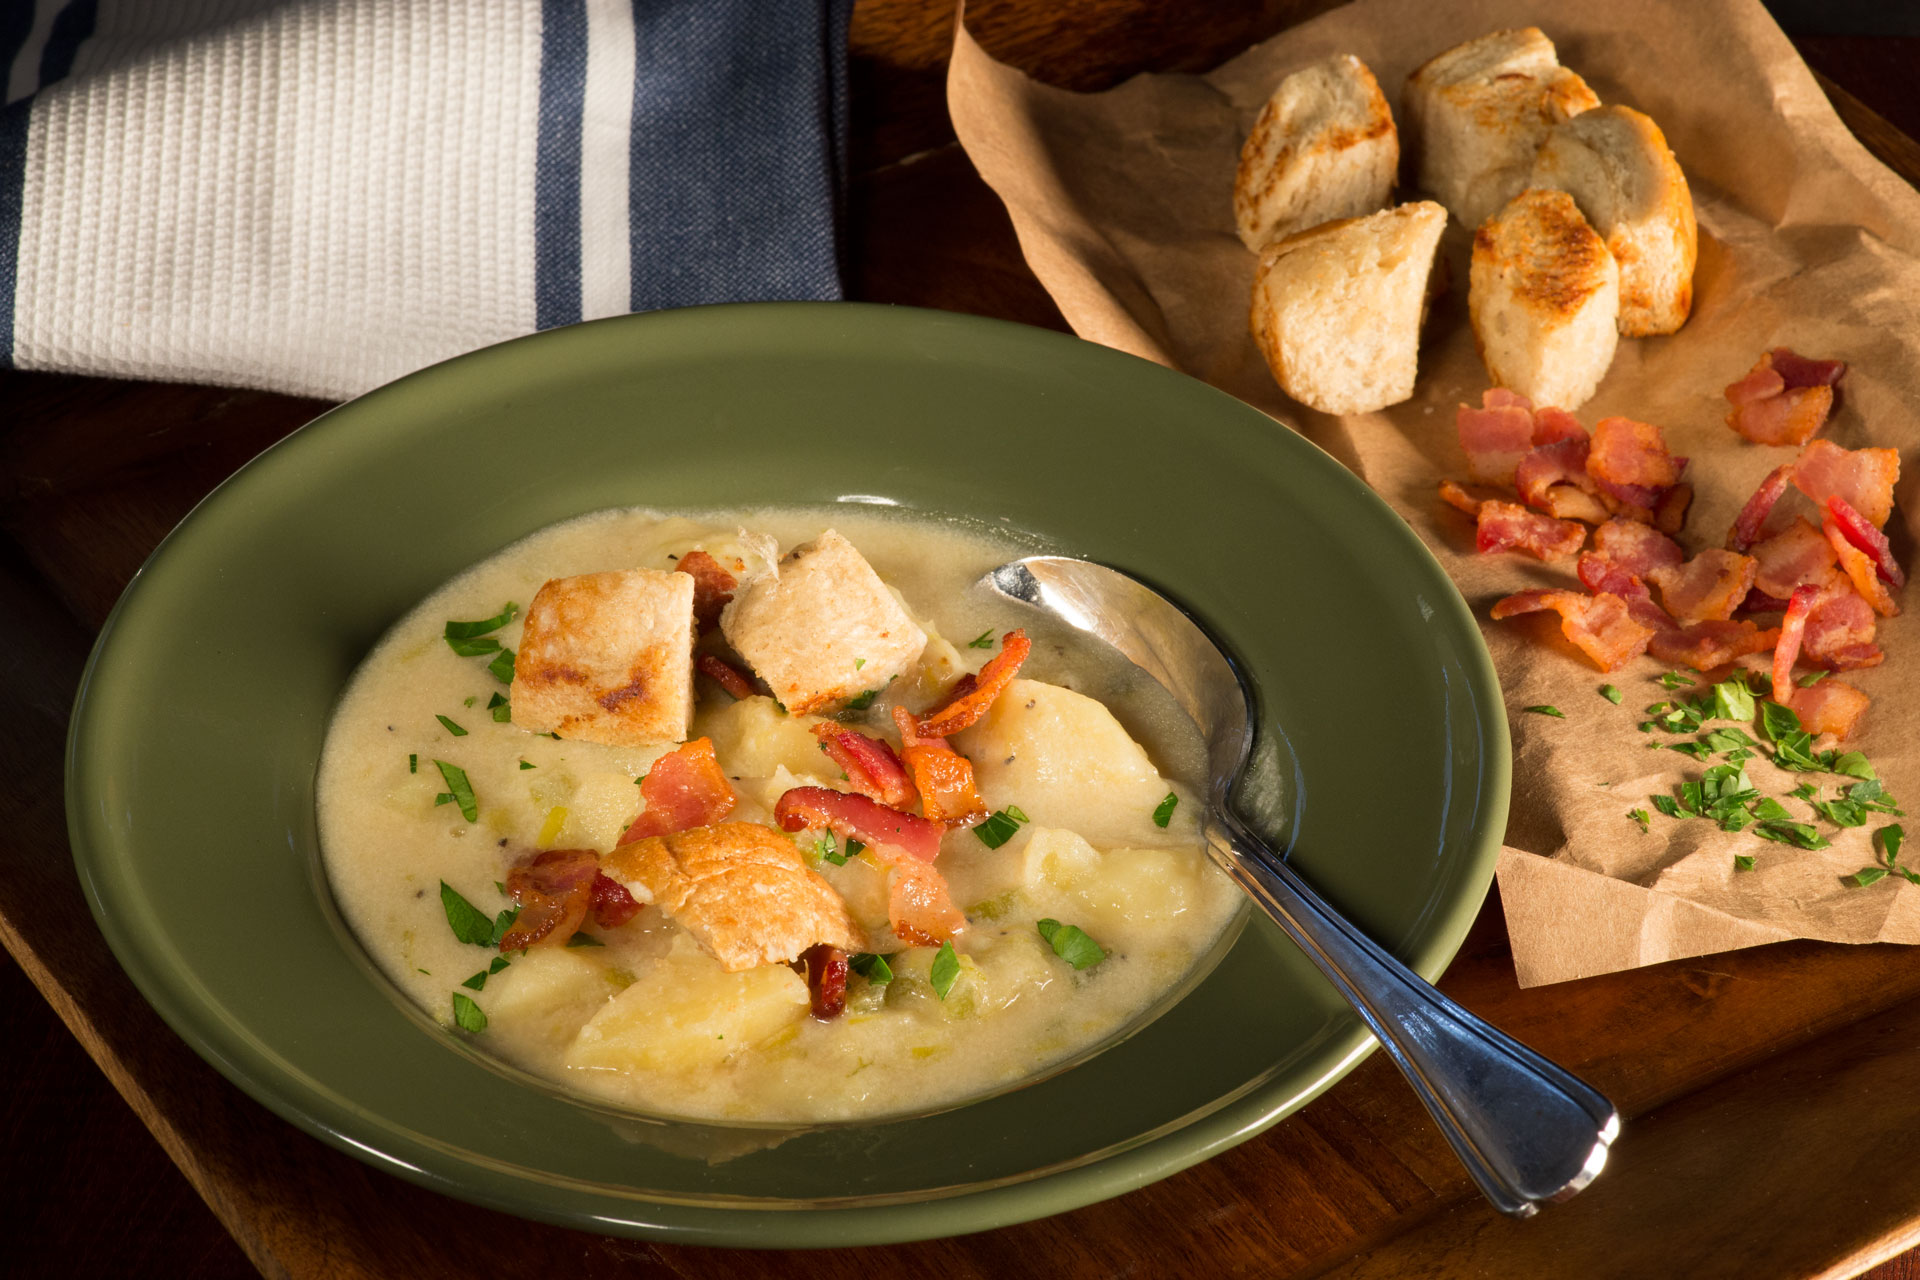 Irish Ale Potato and Cheese Soup